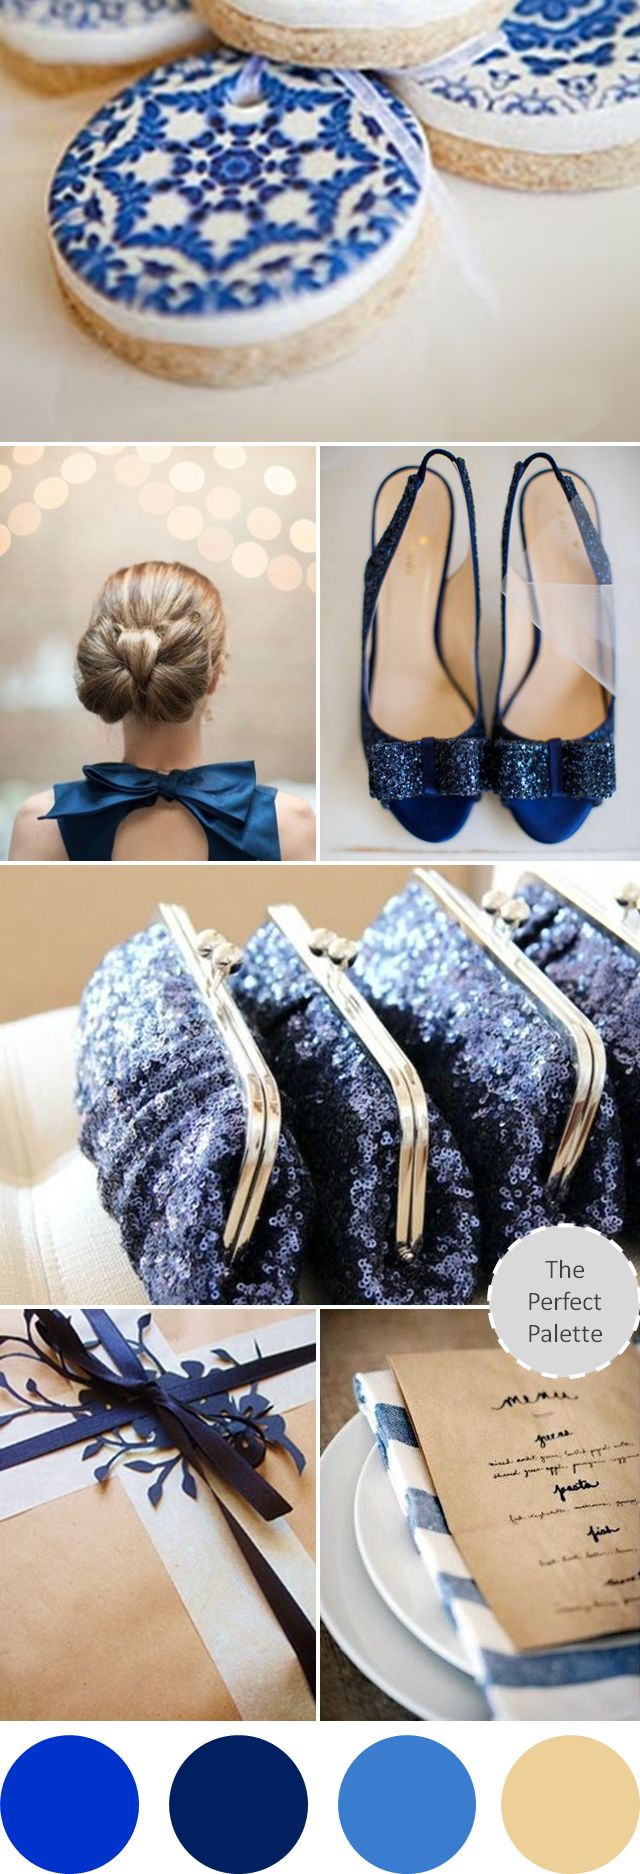 Wedding Colors I Love | Shades of Blue + Beige